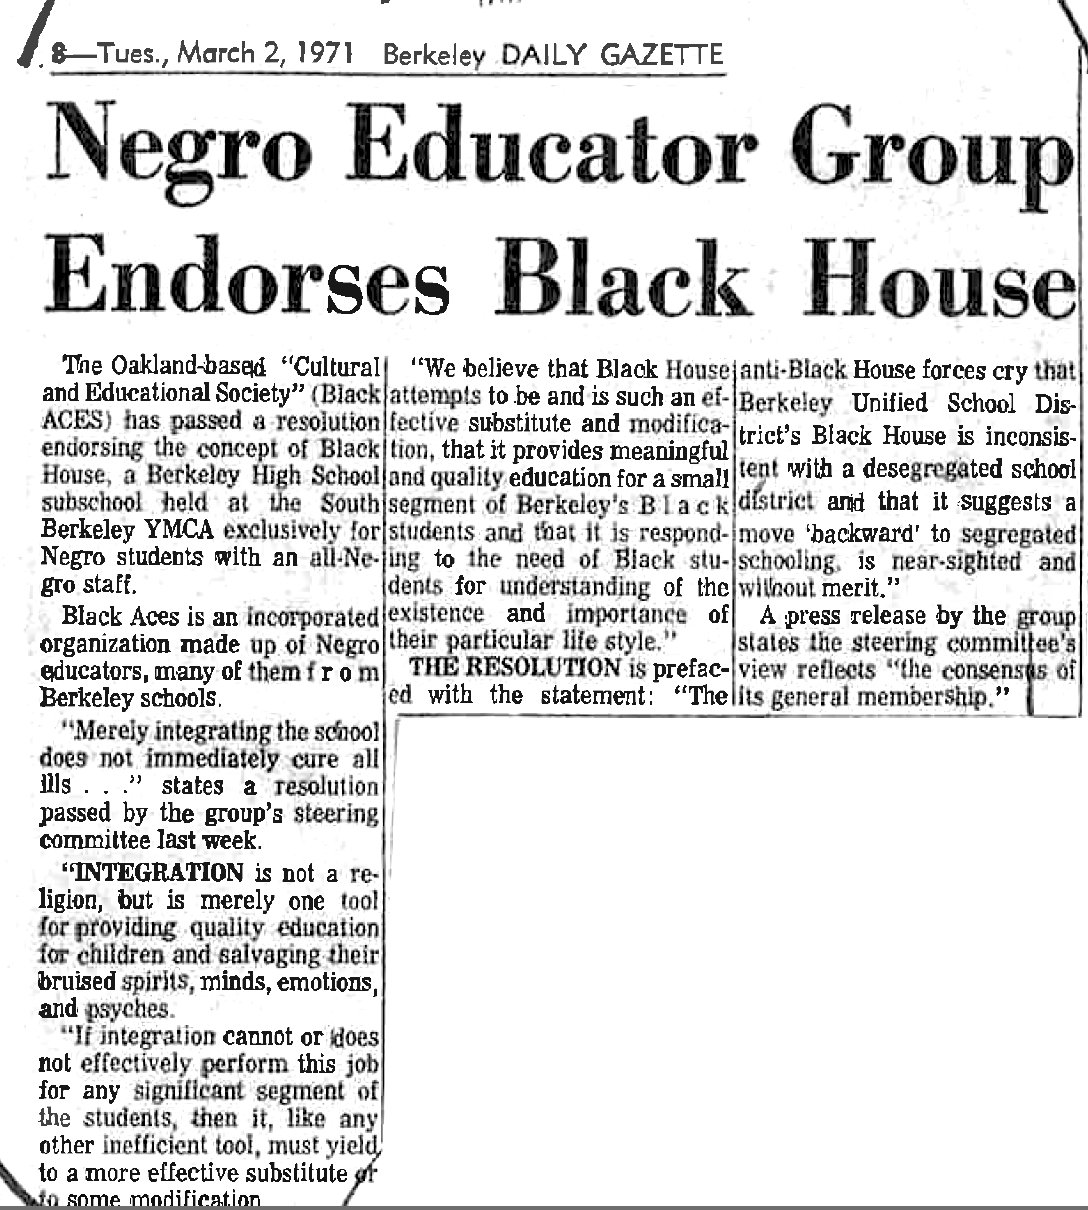 Negro Educator Group Endorses Black House